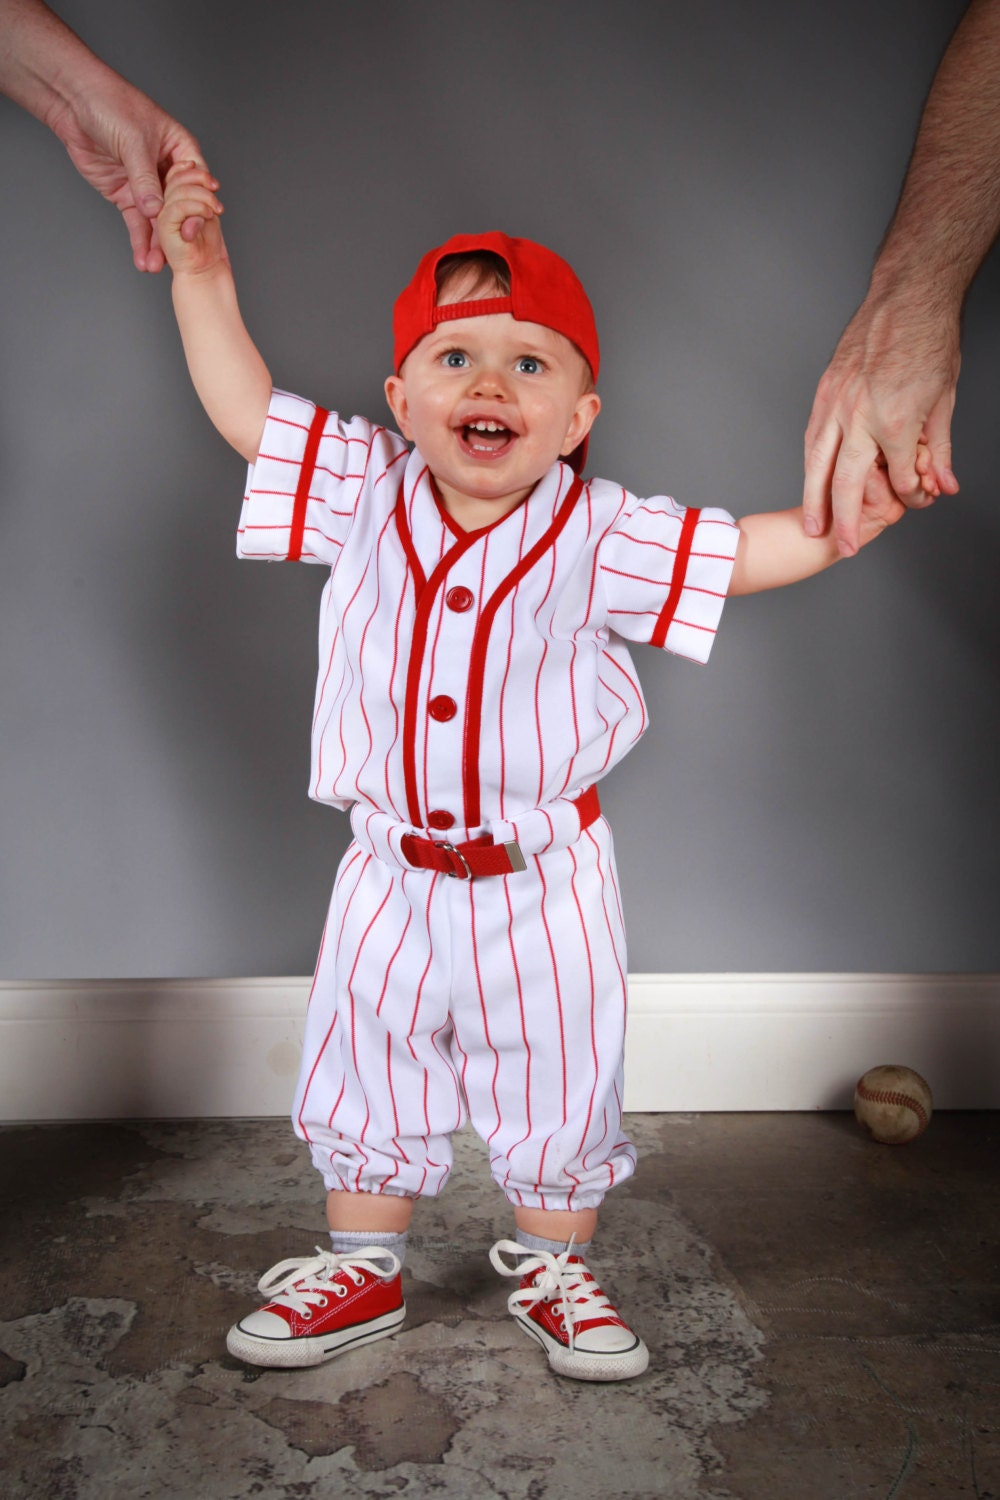 Baseball Uniforms for Photo Prop Or dress up 3 piece Made